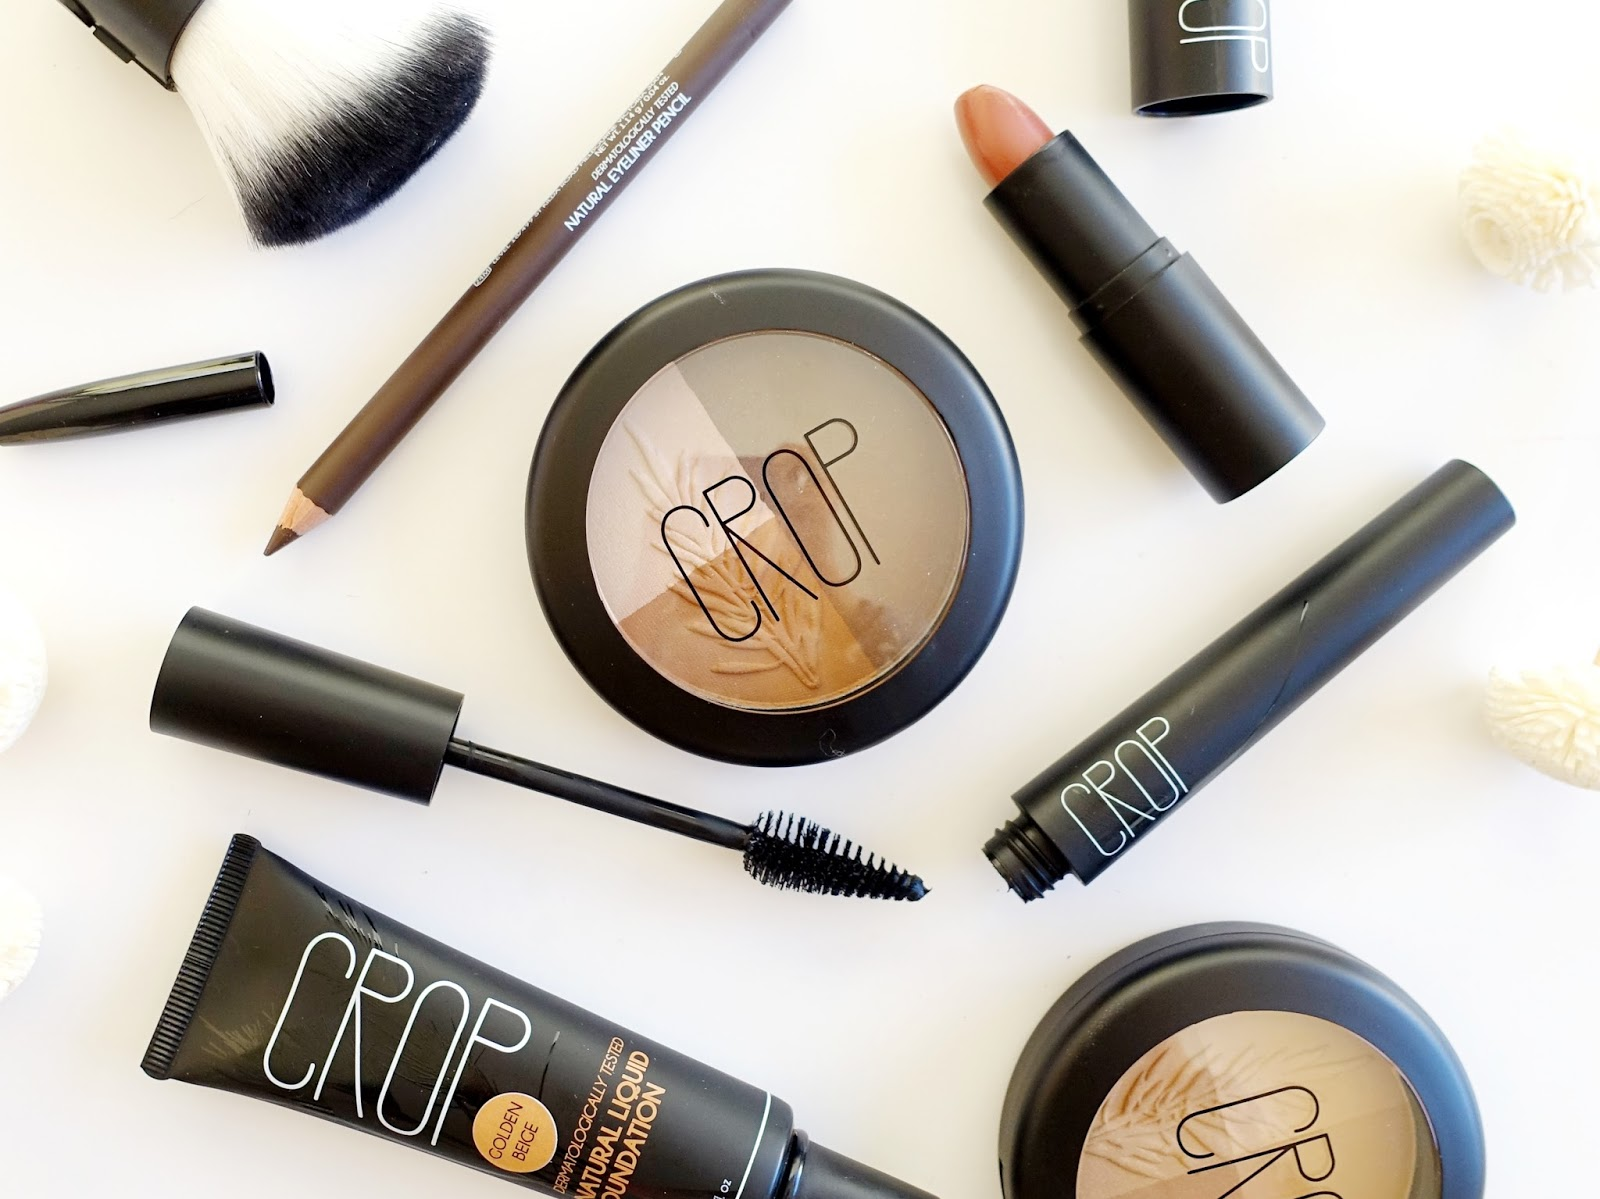 Image result for typography design on makeup products